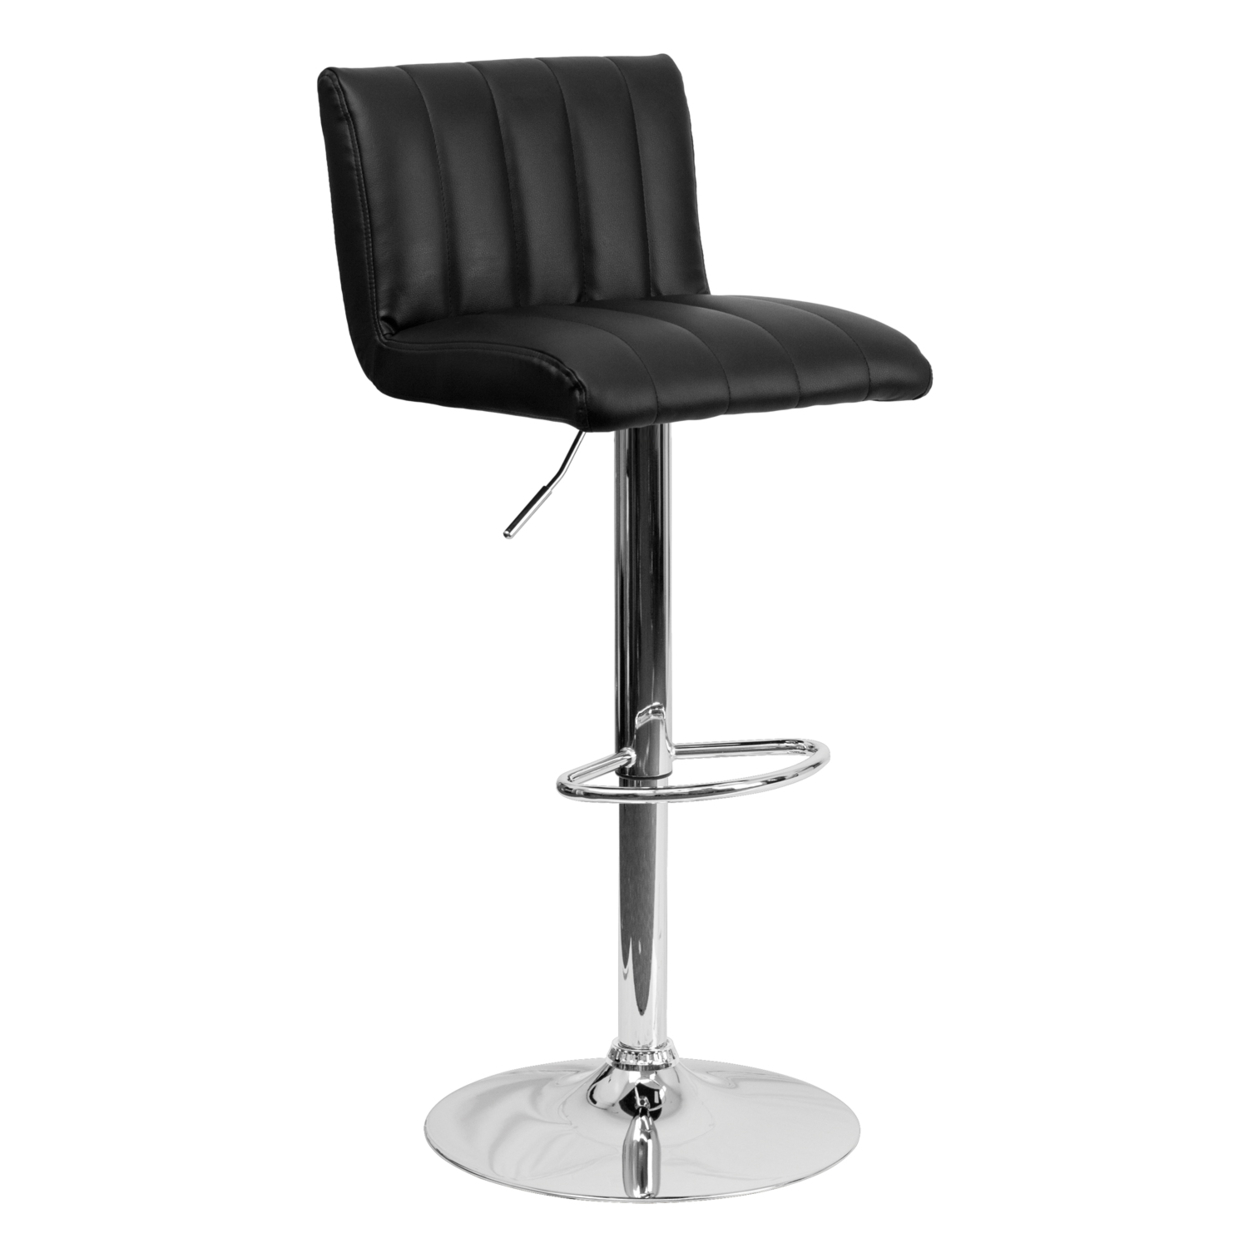 Flash Furniture Contemporary Black Vinyl Adjustable Height Bar Stool with Chrome Base [863-CH-112010-BK-GG] цепочка john richmond цепочка